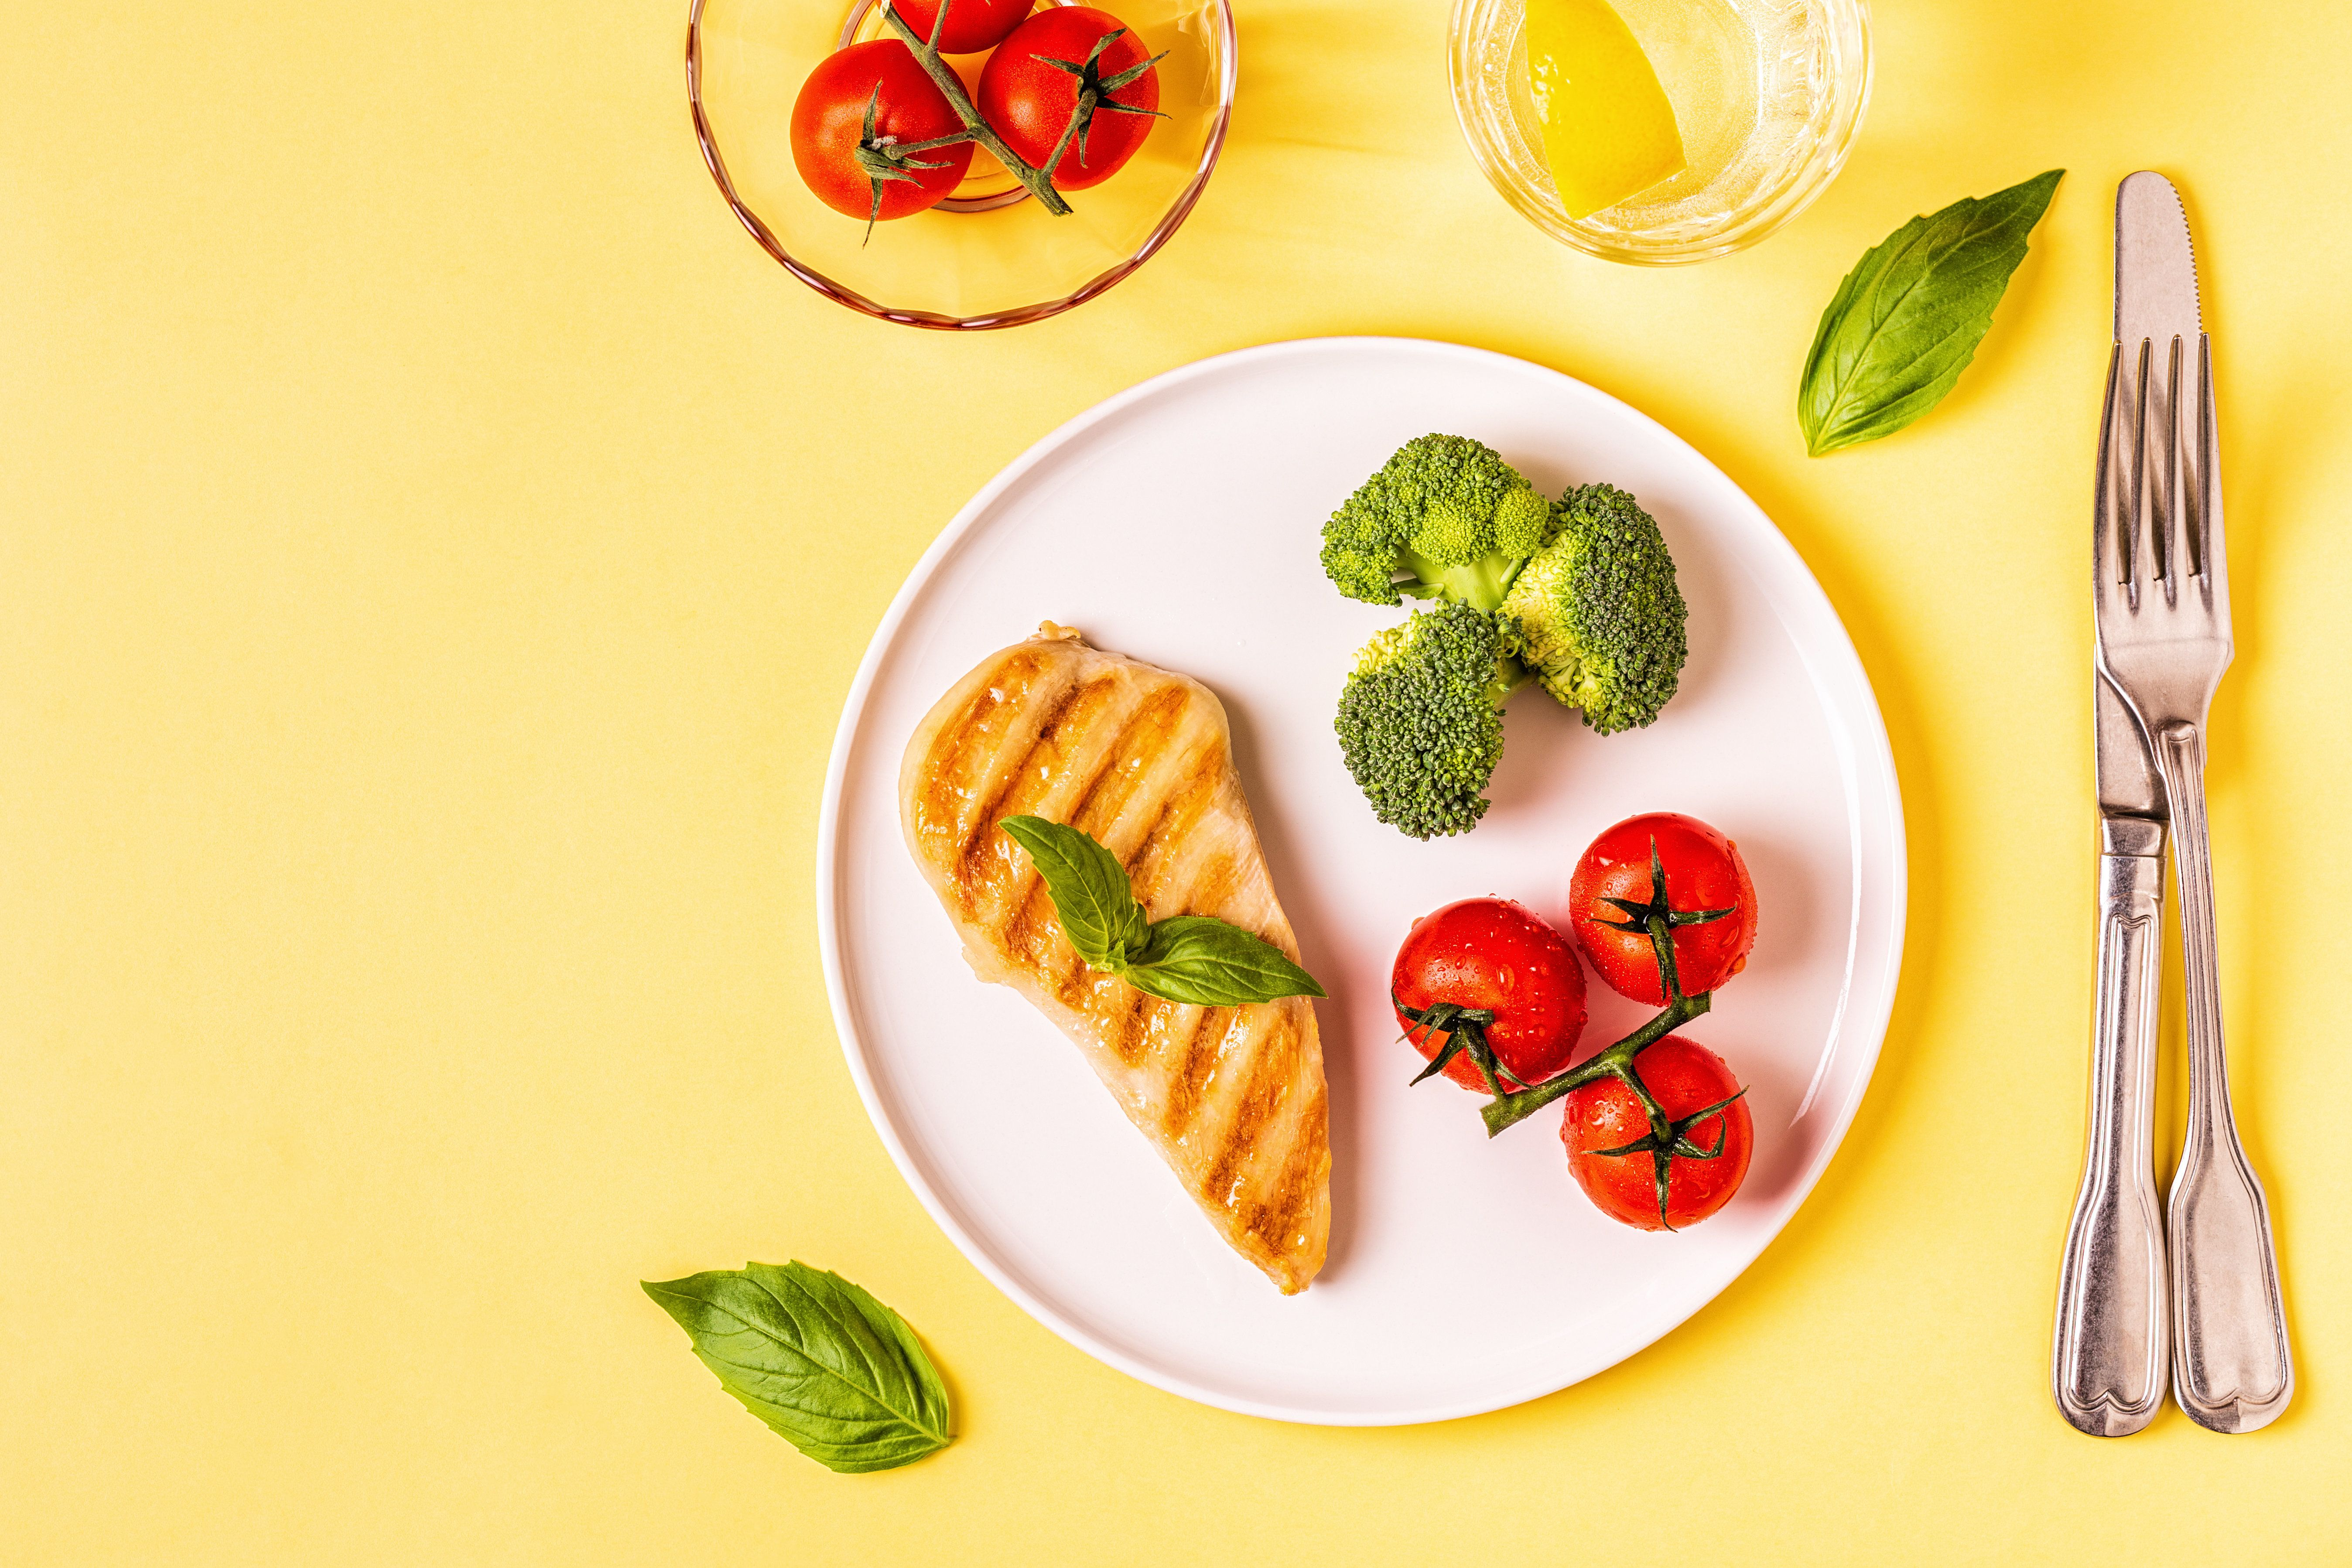 EXPLAINED: Pegan Diet Predicted To Be A Big Food Trend Of 2019, But What Is